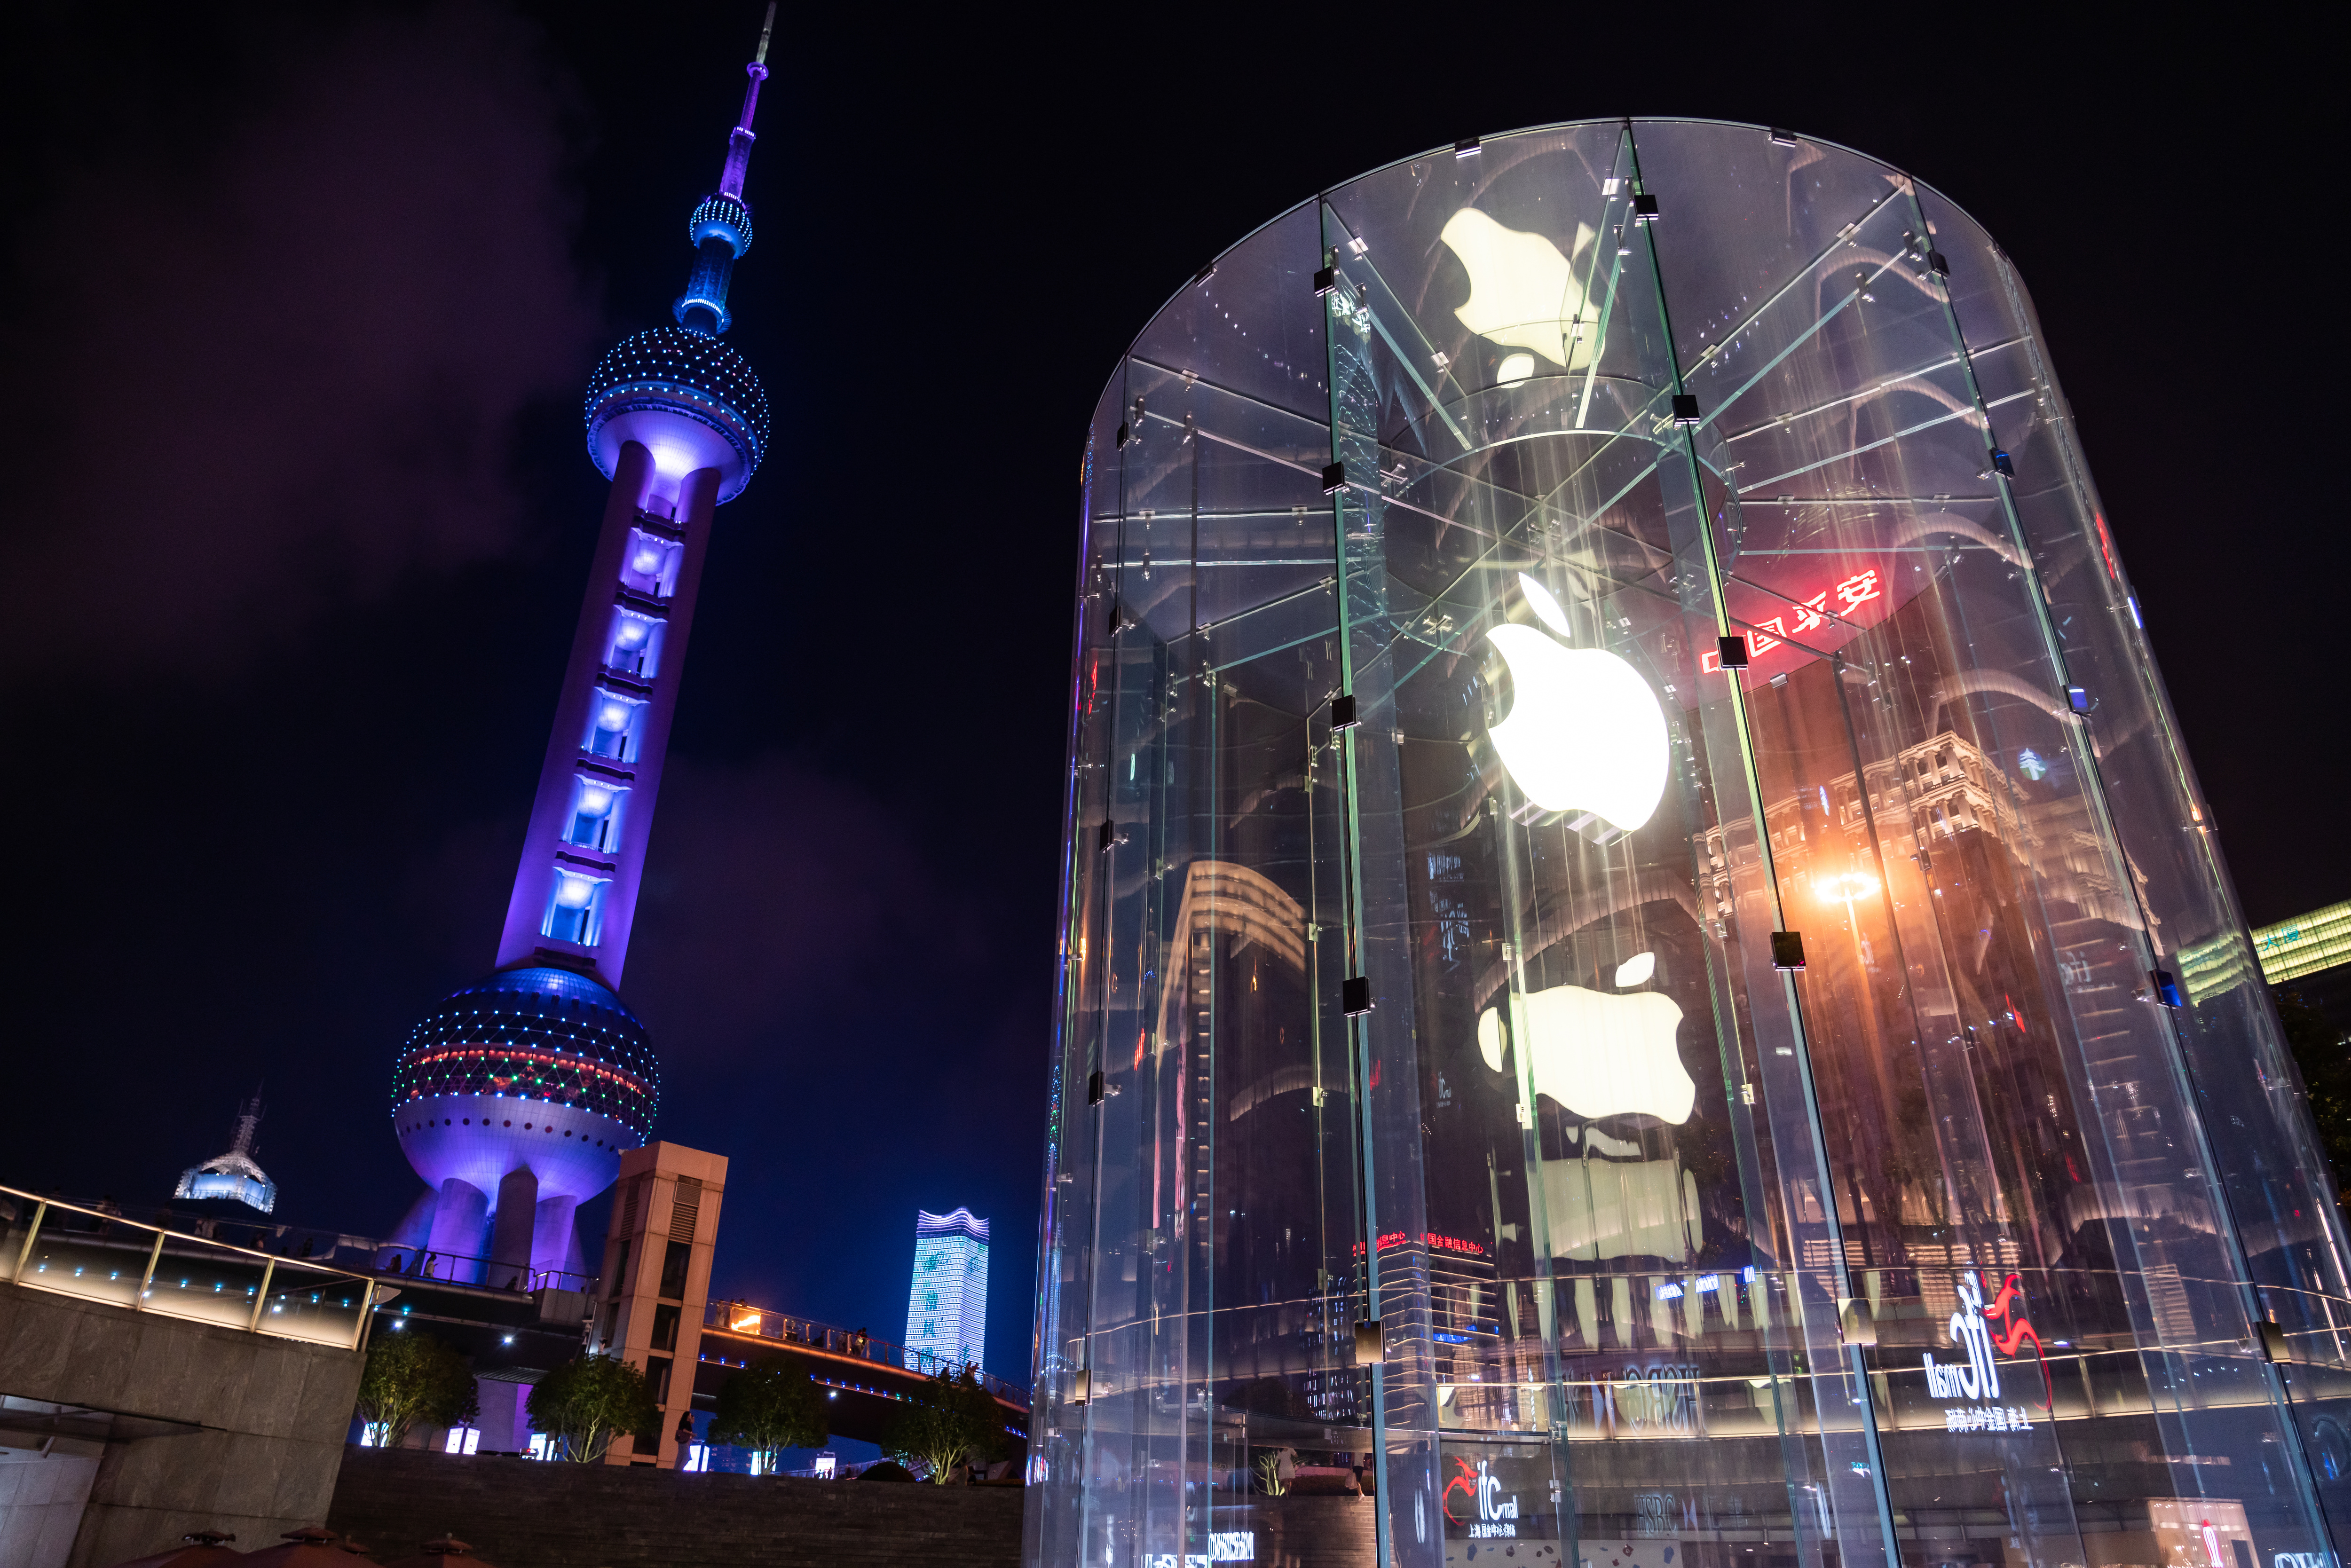 SHANGHAI, CHINA - 2019/09/08: American multinational technology company Apple store and logo seen in Shanghai with Oriental Pearl Tower in the background. (Photo by Alex Tai/SOPA Images/LightRocket via Getty Images)